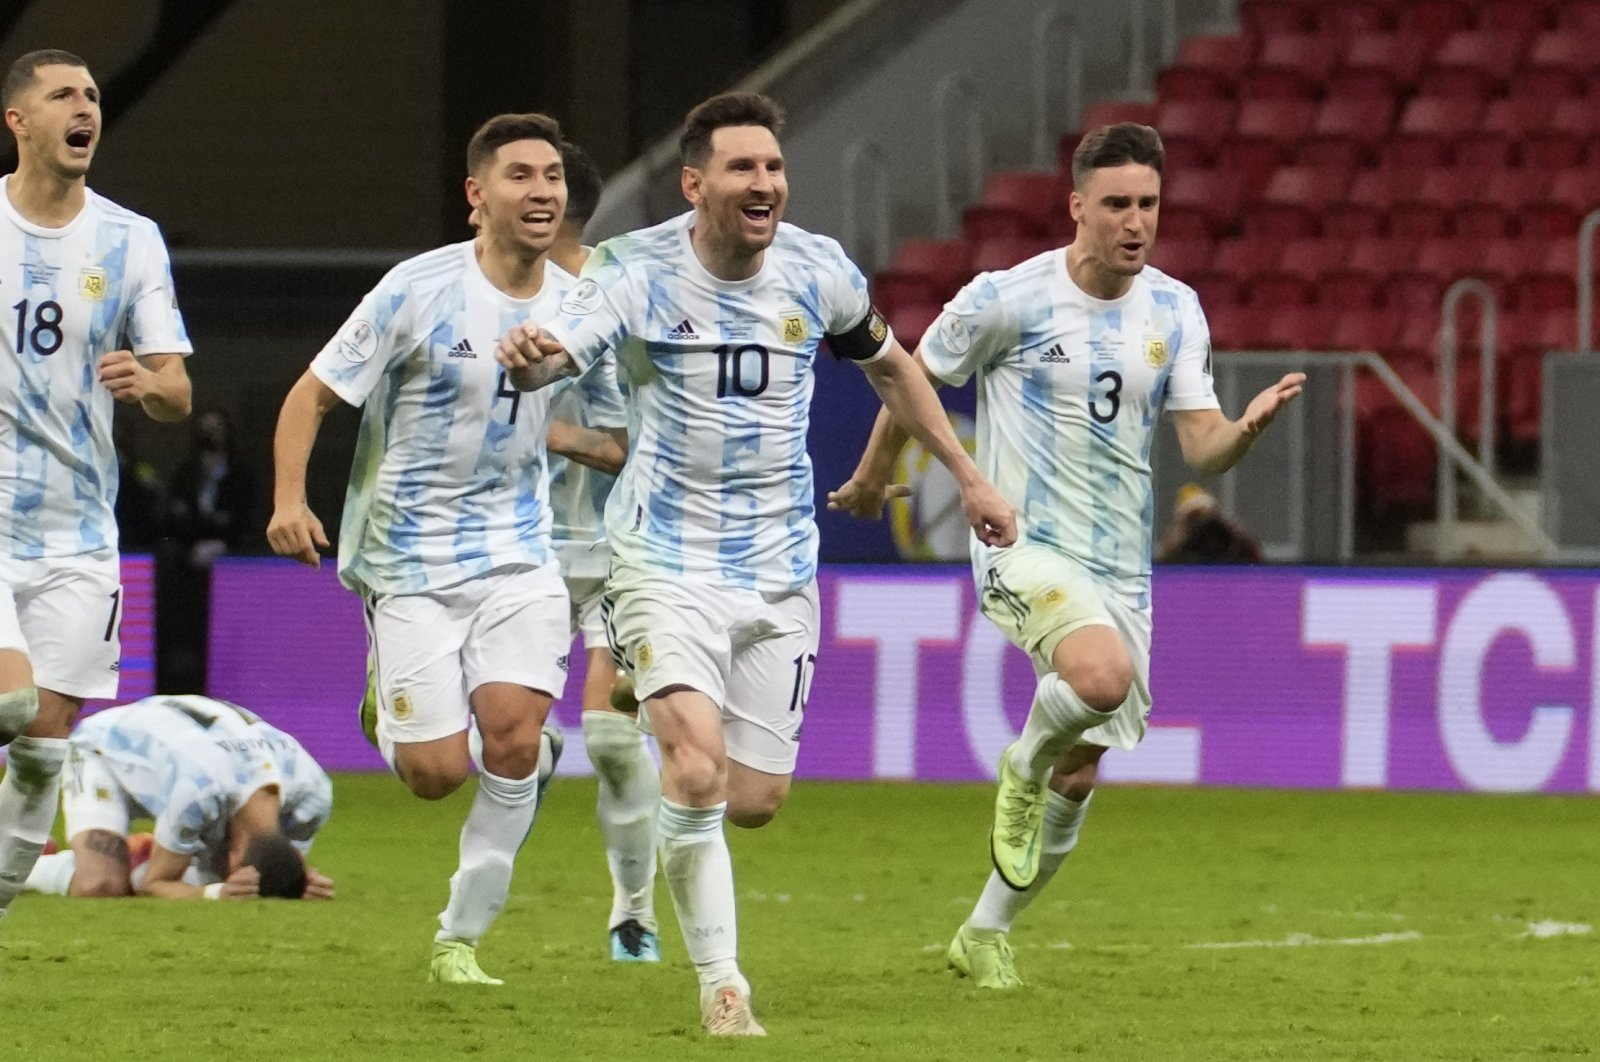 Argentina's Lionel Messi (10) and teammates celebrate defeating Colombia in a penalty shootout during a Copa America semifinal football match at the National stadium in Brasilia, Brazil, July 7, 2021. (AP Photo)